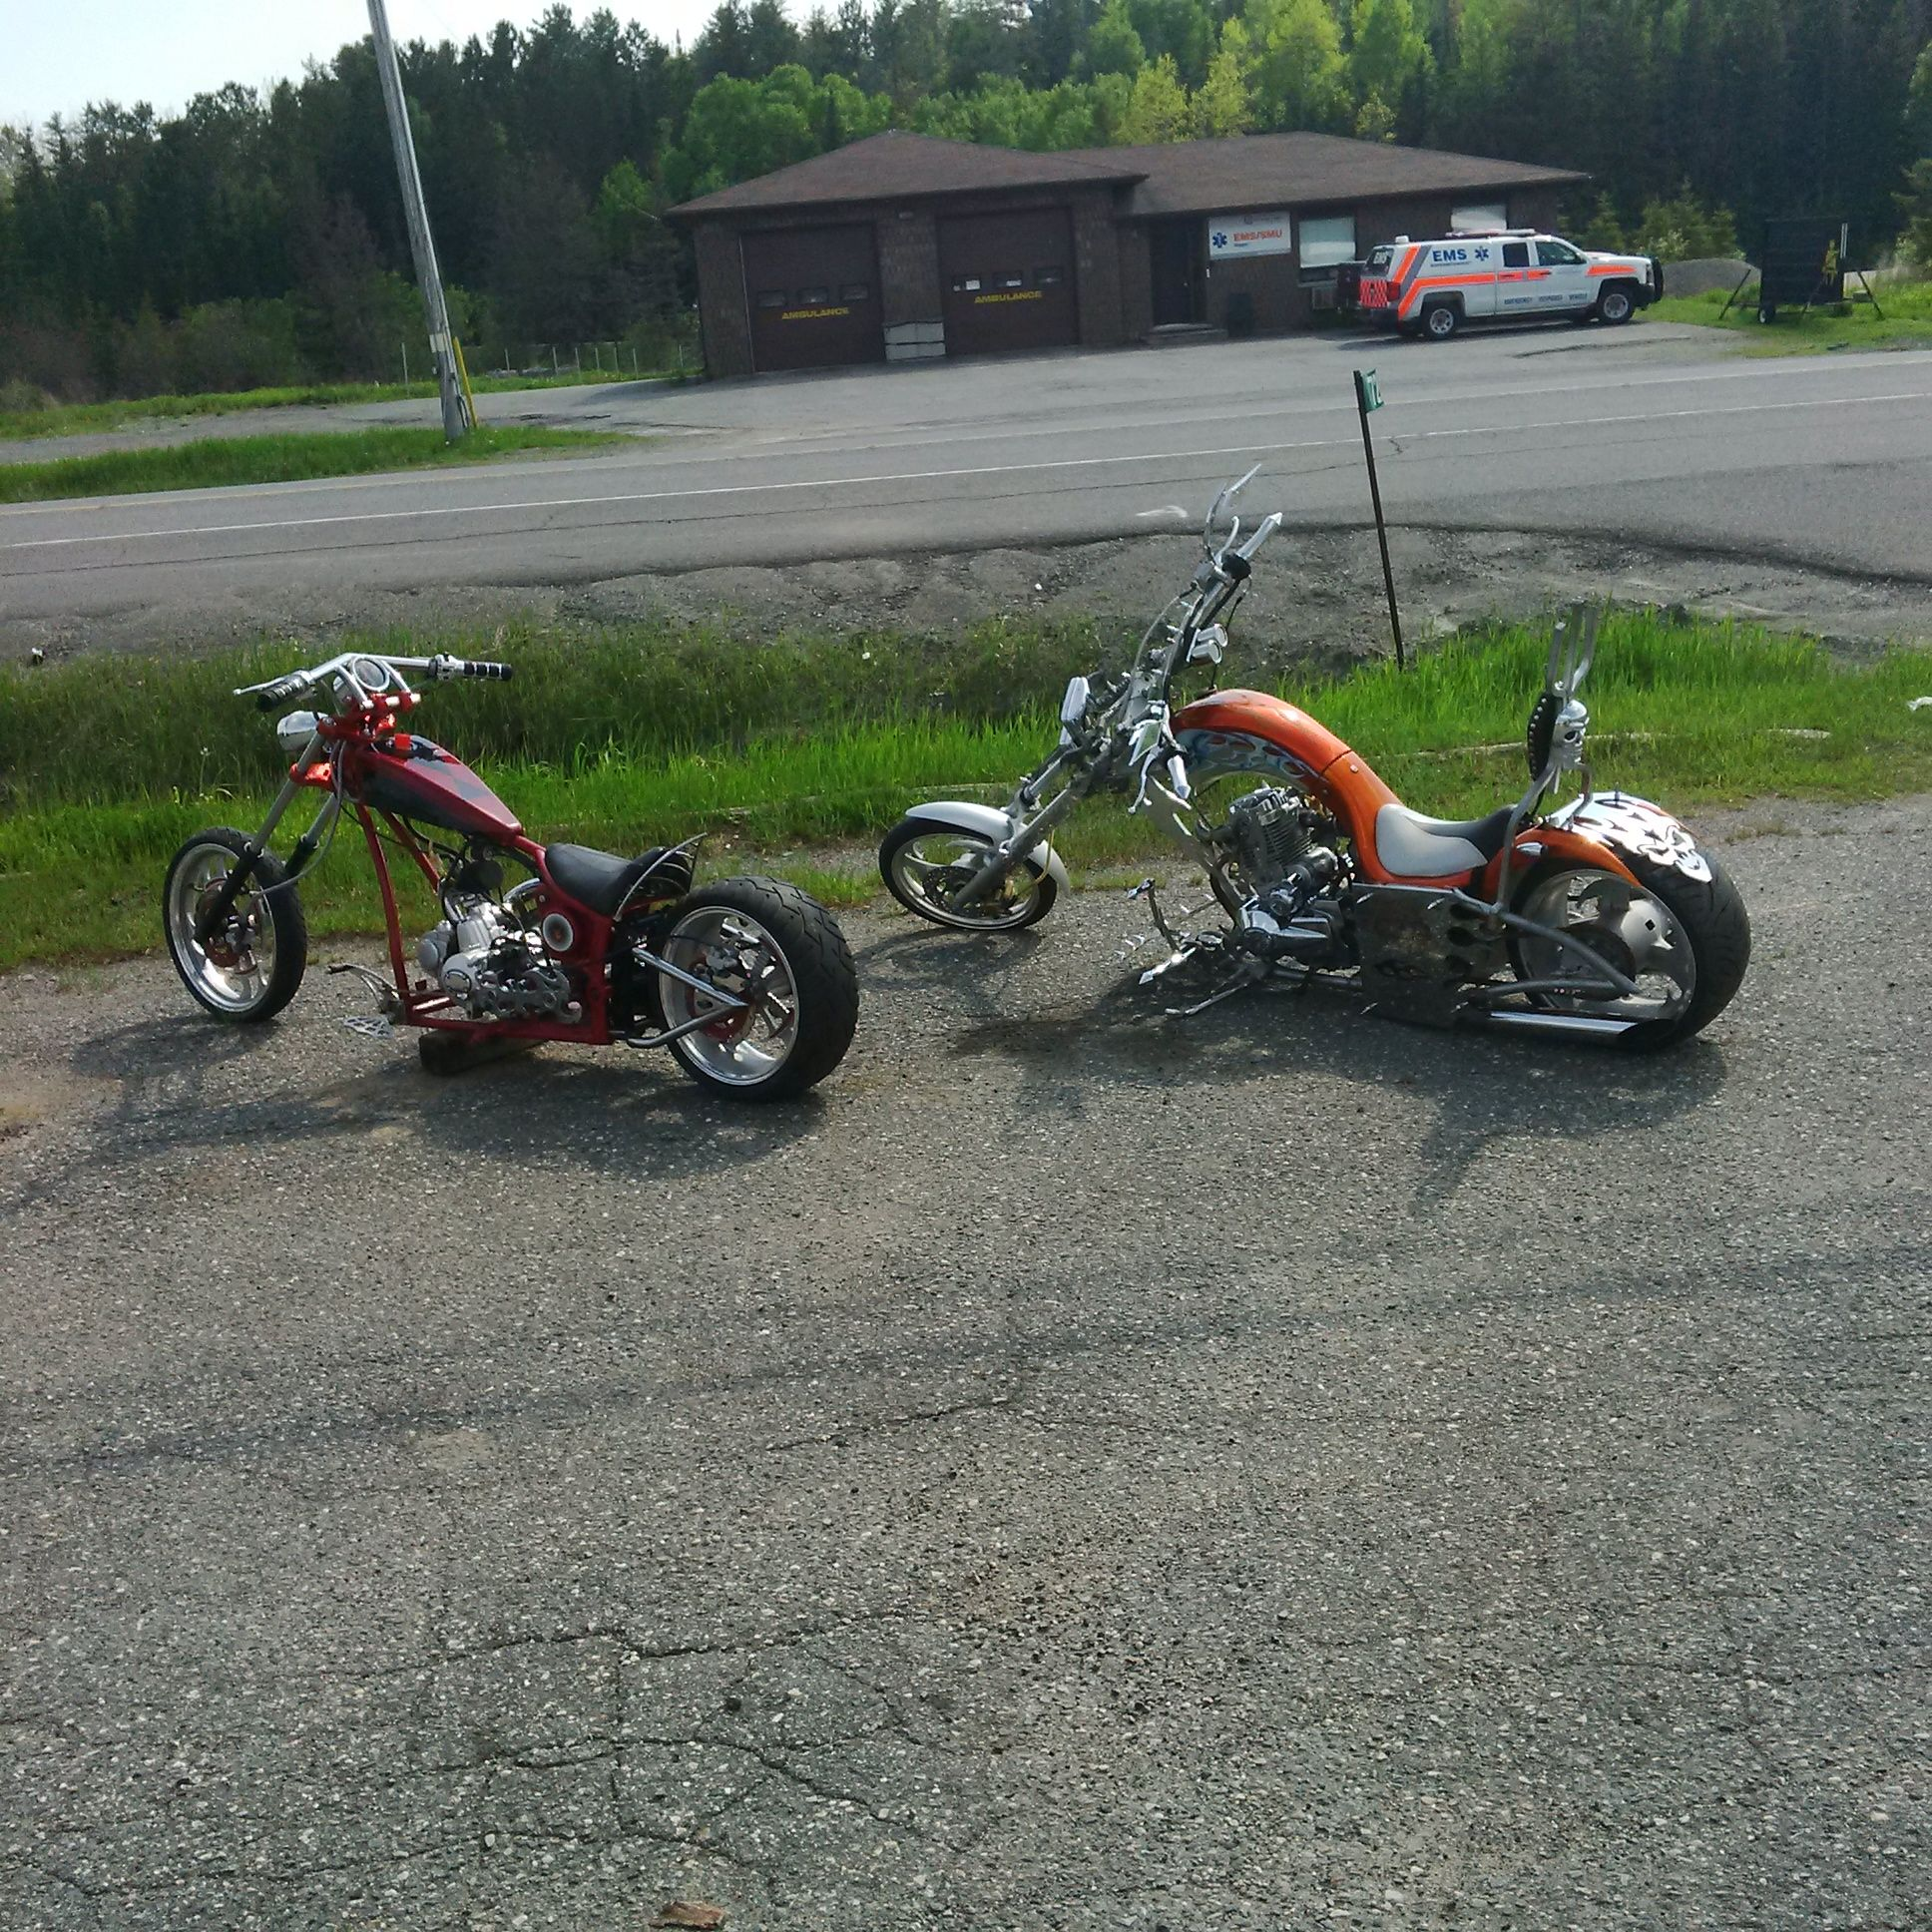 150 Cc And 200cc Mini Chopper Motorcycles Mini Chopper Mini Chopper Motorcycle Mini Motorbike